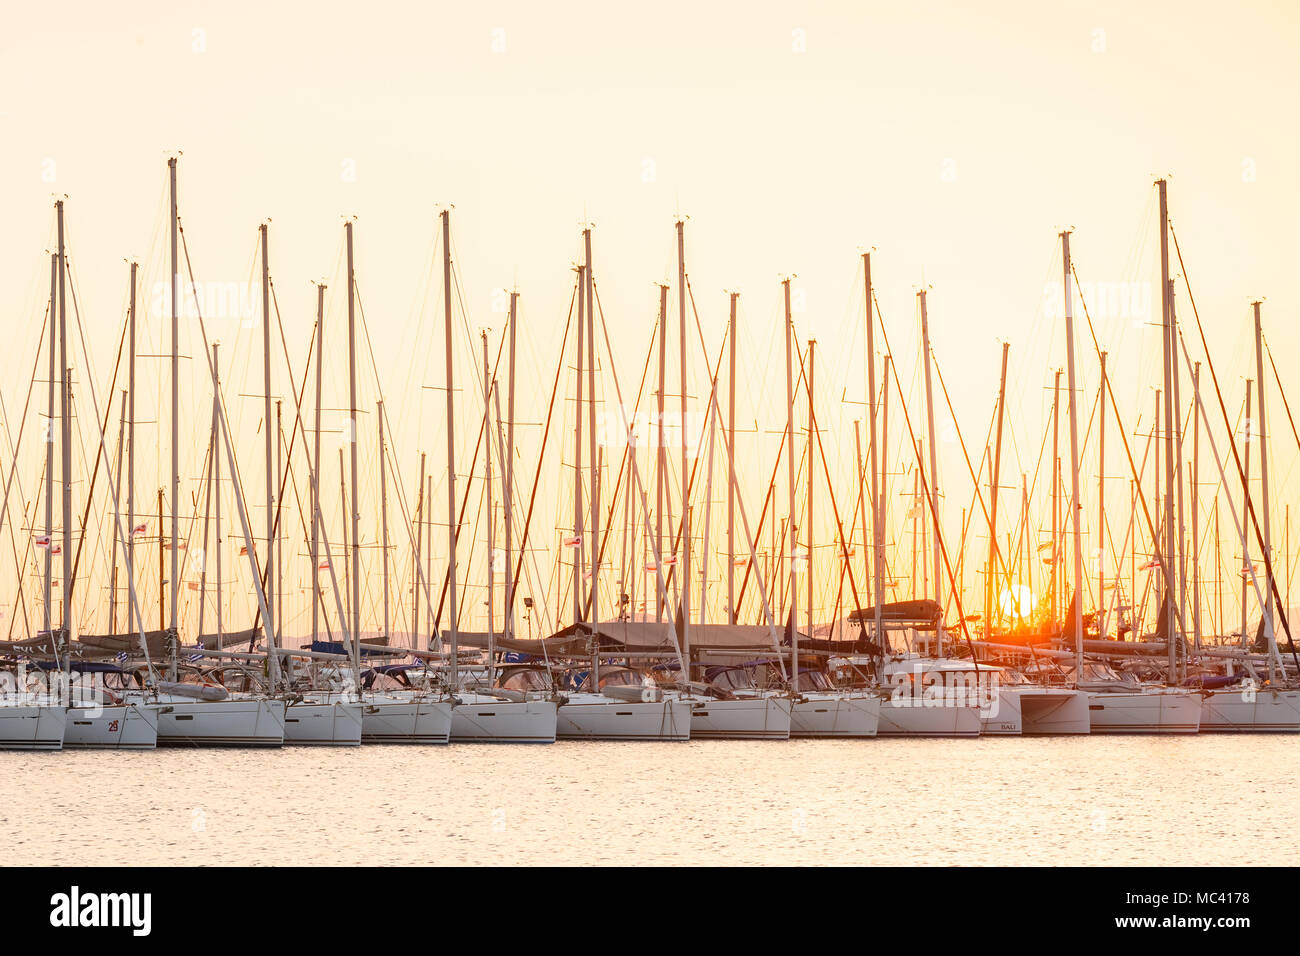 Sail boats in Alimos marina in Athens, Greece. - Stock Image